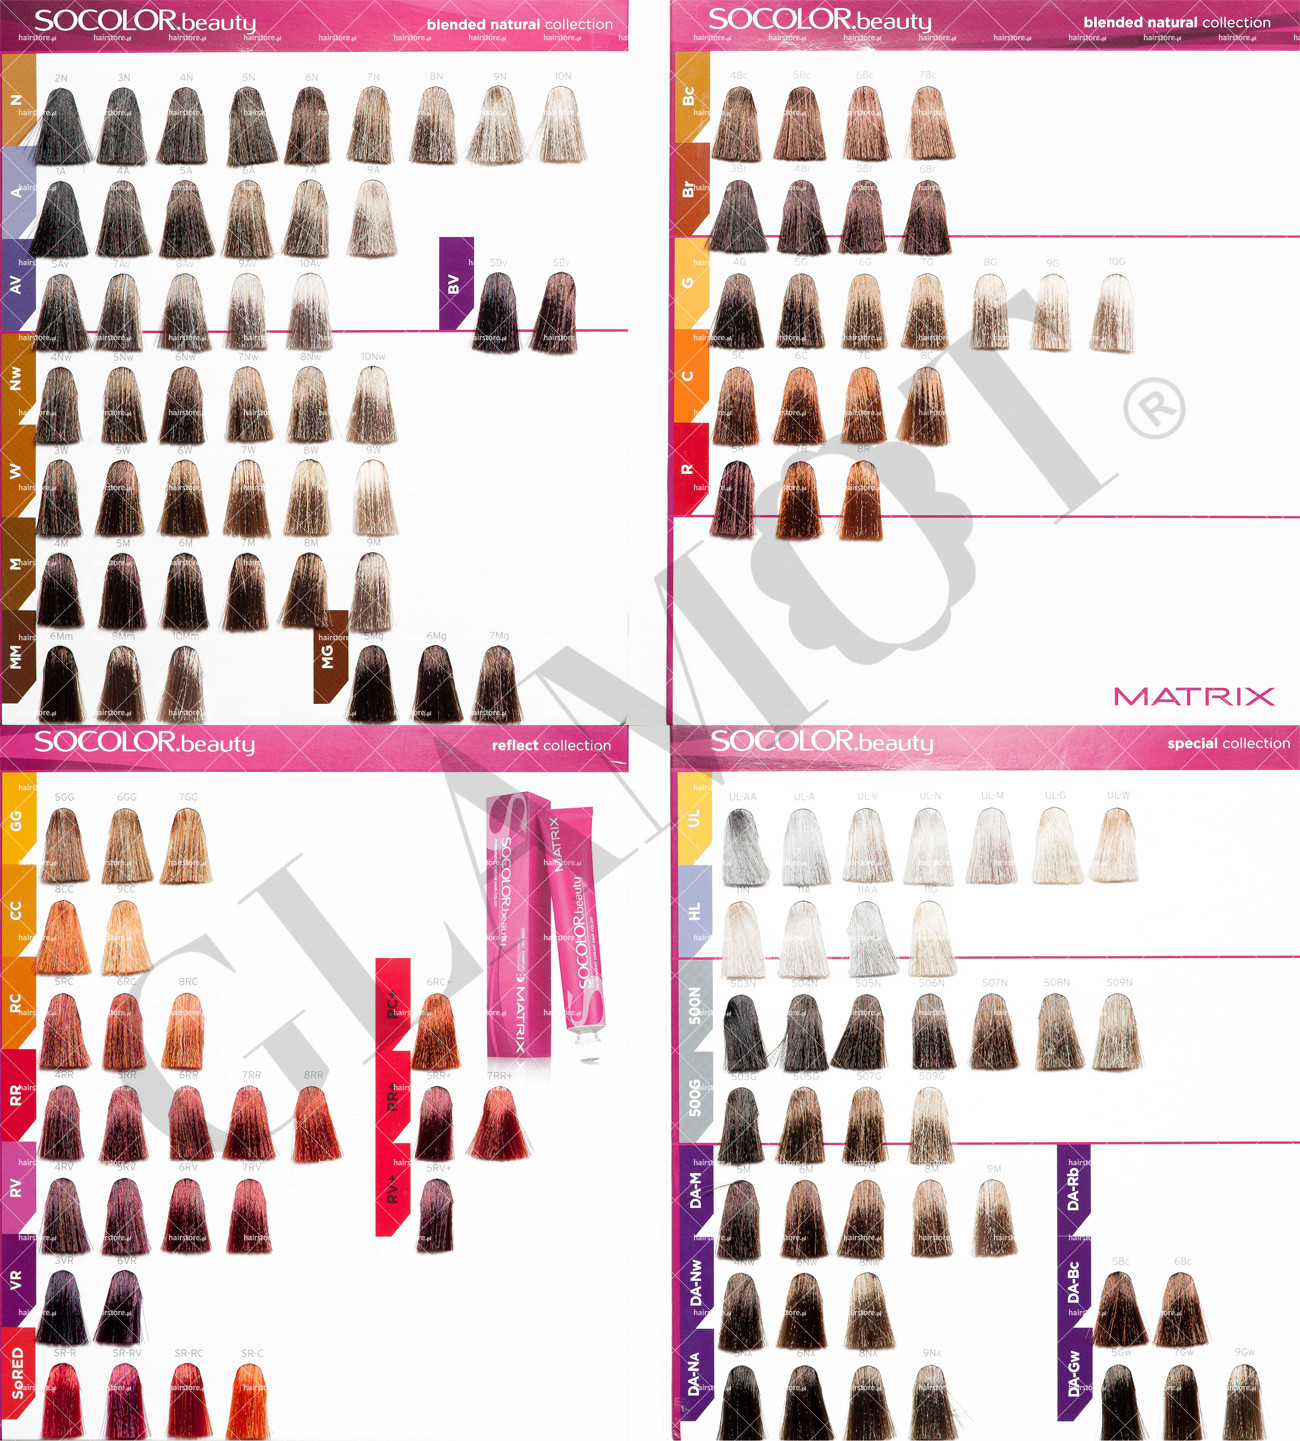 Hair dye colors chart for coloring your hair accurately of matrix matrix red hair color chart matrix socolor beauty glamot nvjuhfo Gallery